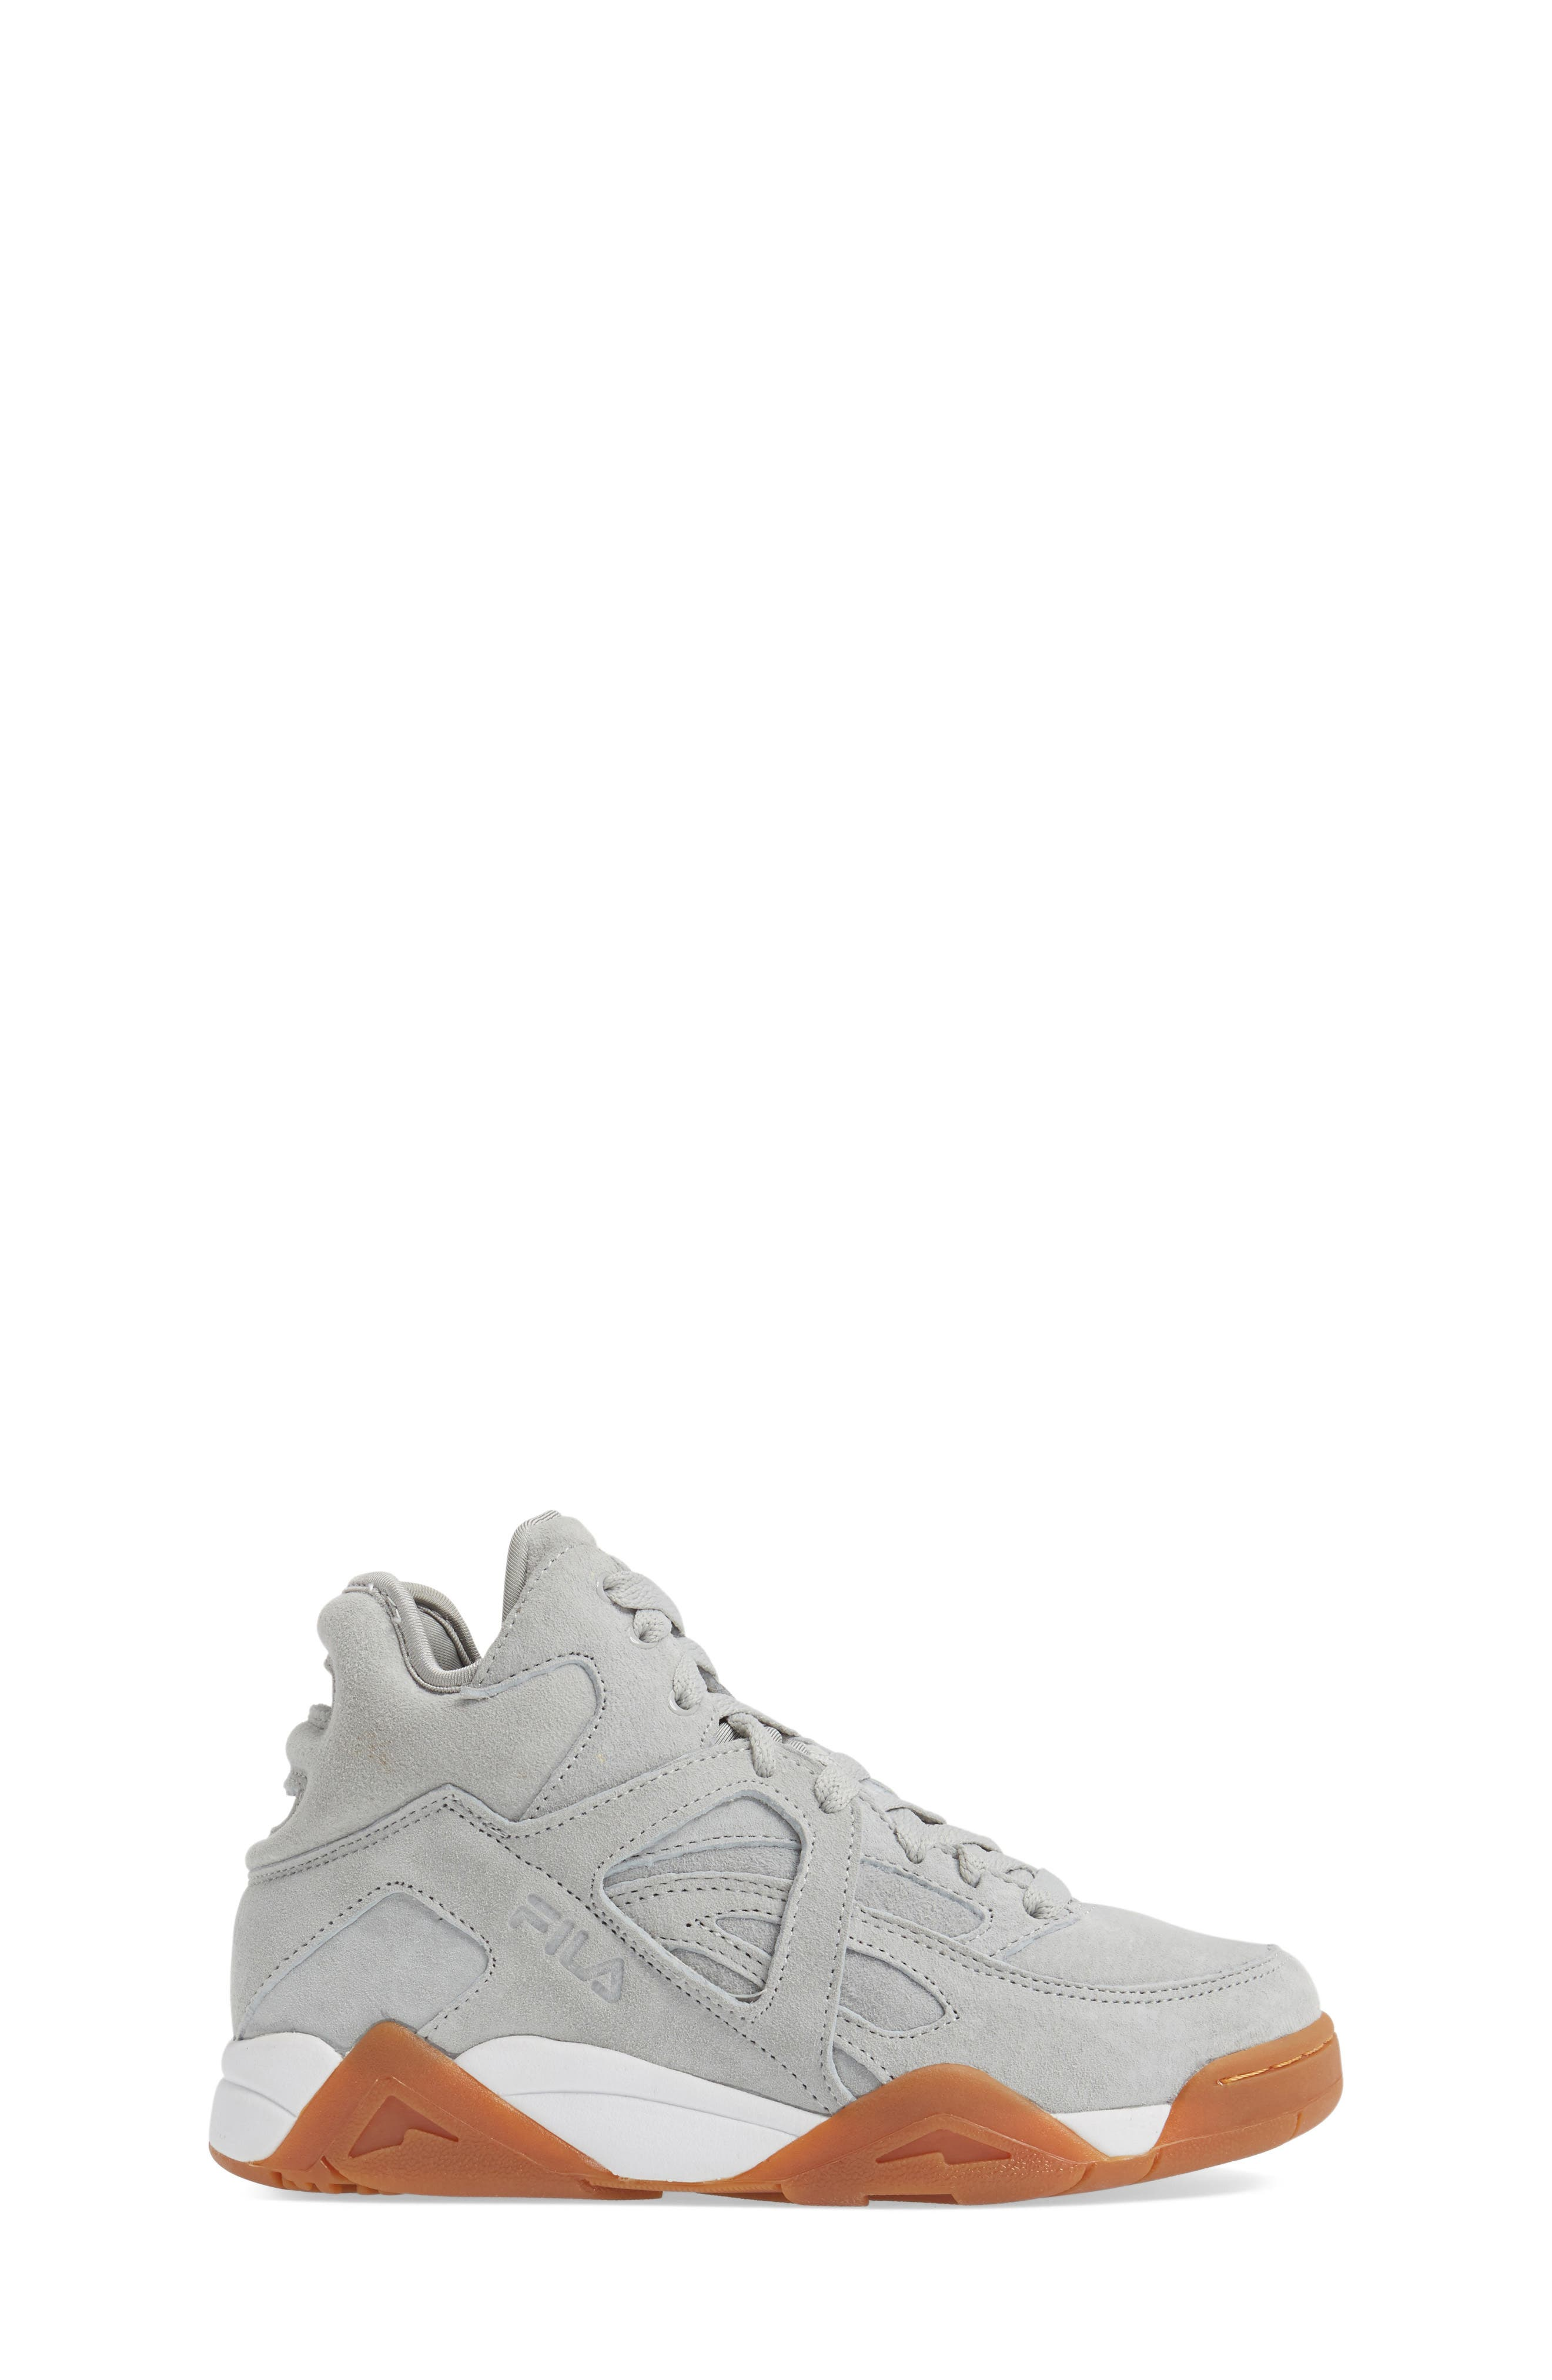 The Cage High Top Sneaker,                             Alternate thumbnail 3, color,                             072